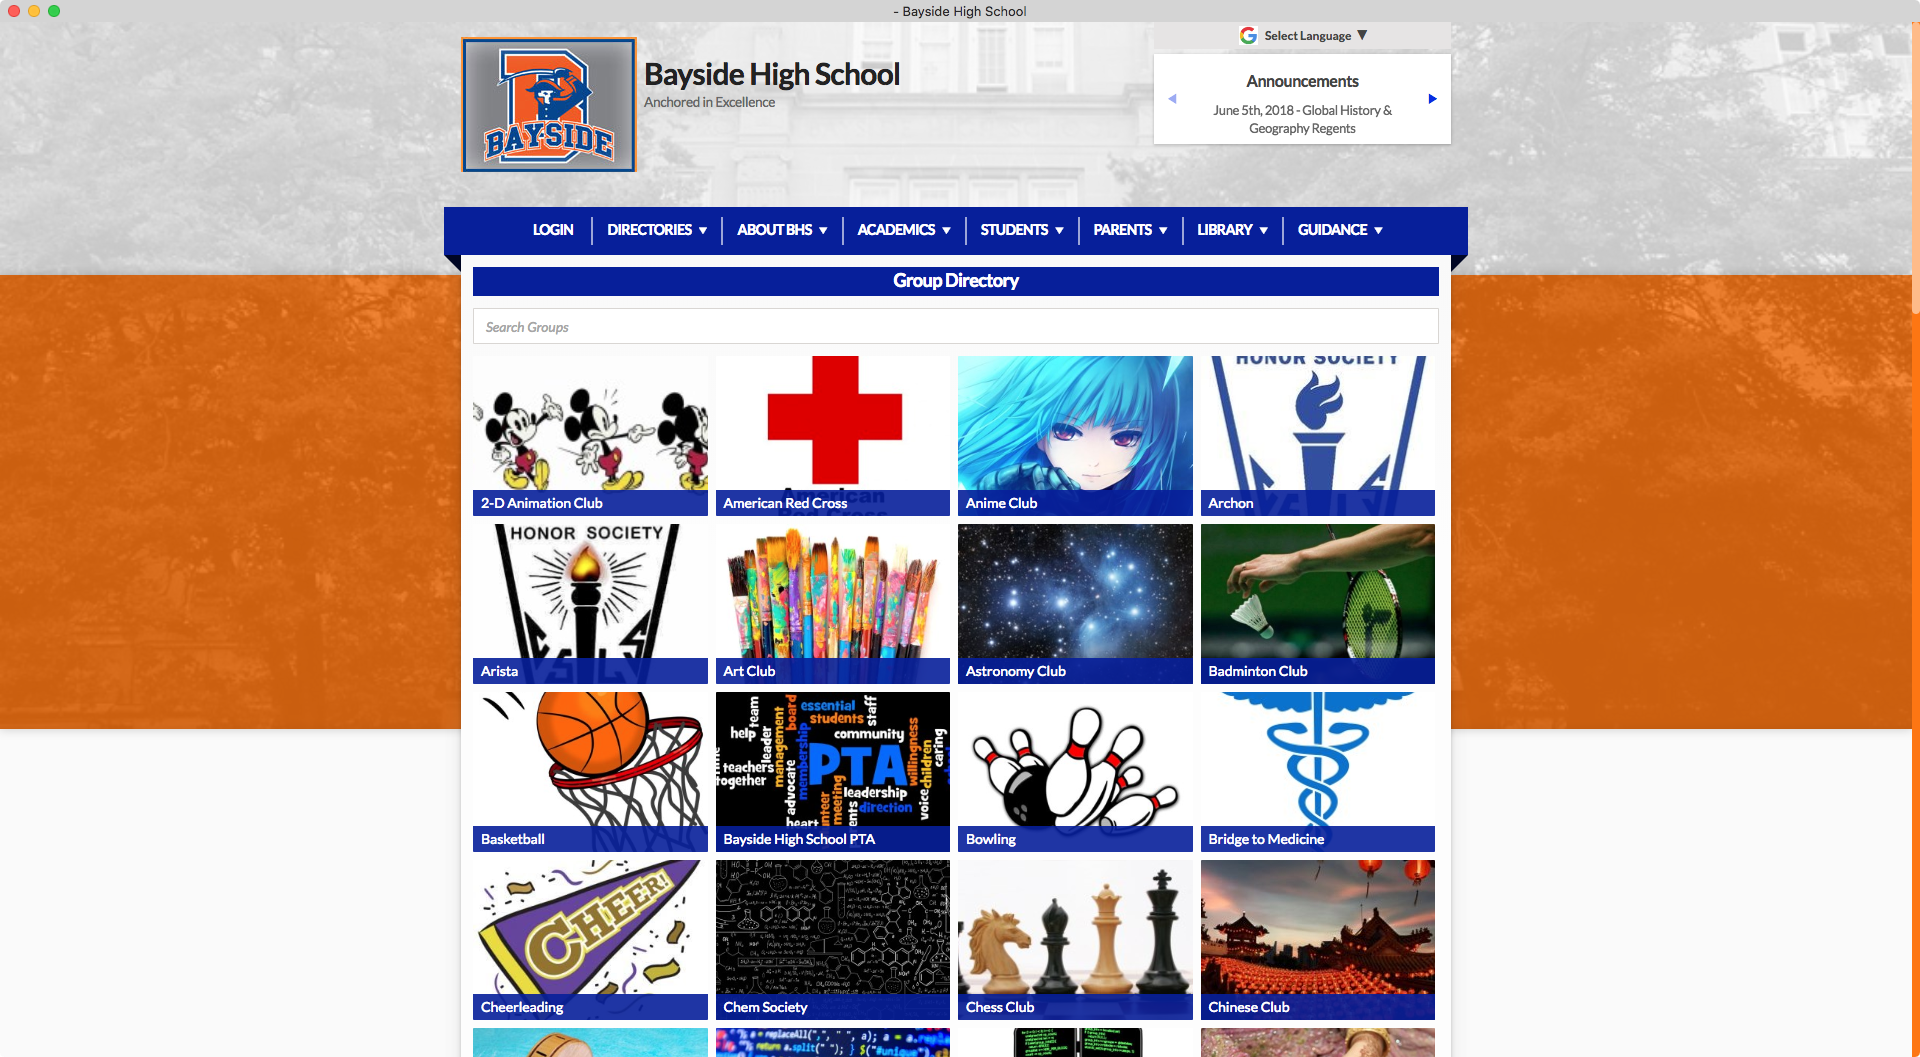 Bayside High School Team and Club Directory Webpage